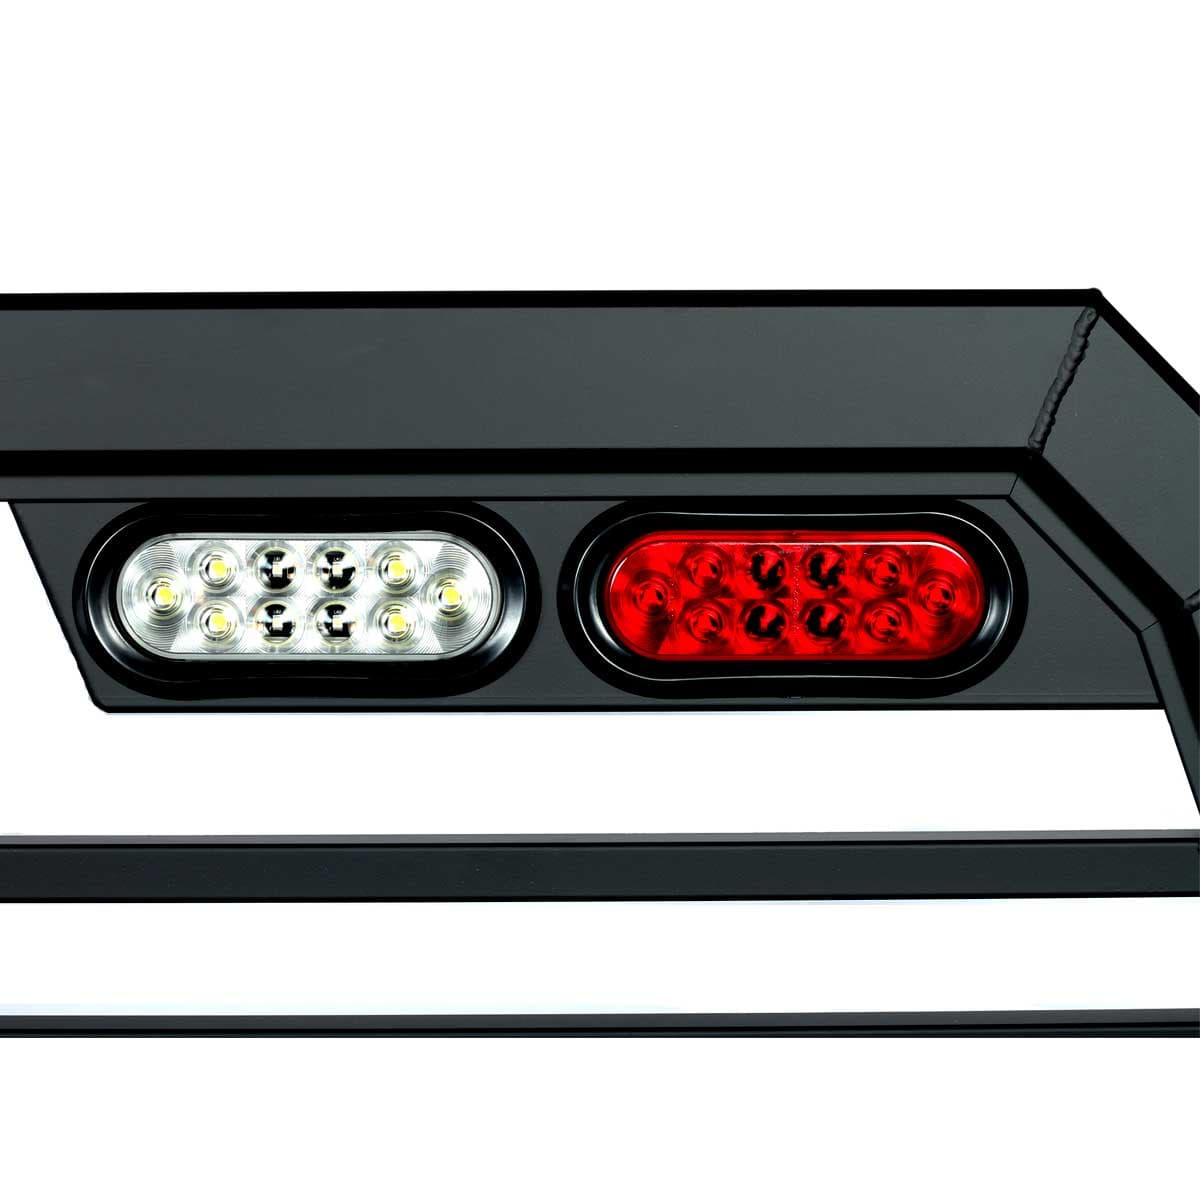 hight resolution of oval shaped backup light and brake light on a truck rack